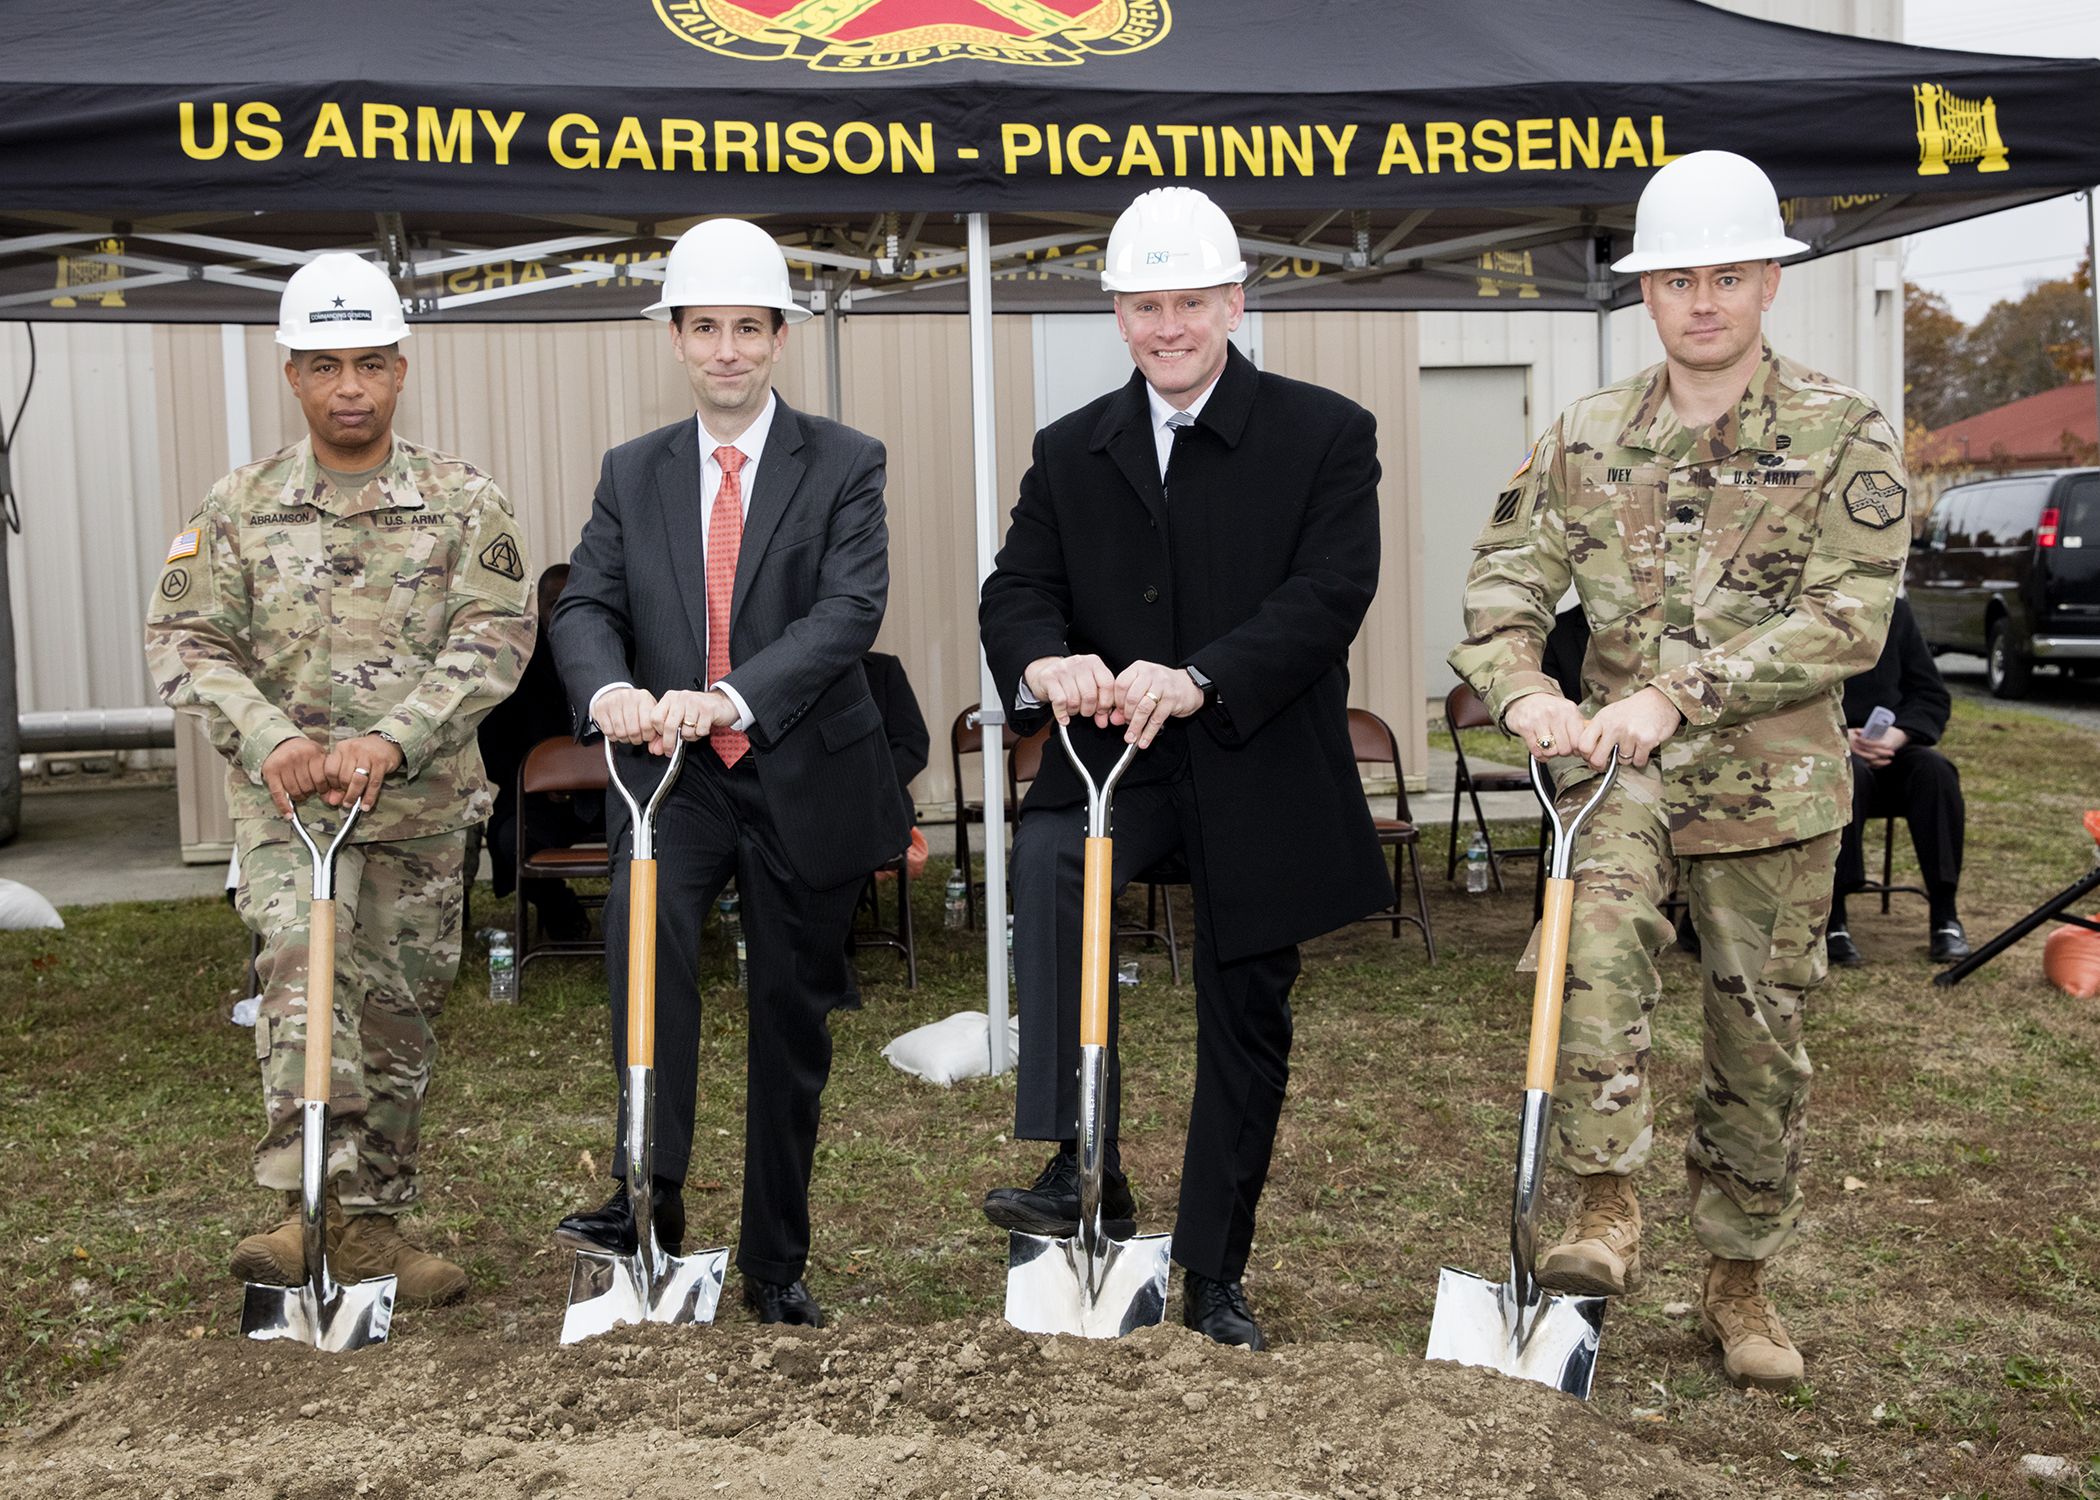 Pictured left from right: Brigadier General Alfred F. Abramson III, Senior Commander; Jordan Gillis, Acting Assistant Secretary of the Army Installations, Energy and Environment; Steven Spanbauer, Senior Vice President, Energy Systems Group; and Lieutenant Colonel Jeffrey Ivey, Garrison Commander.